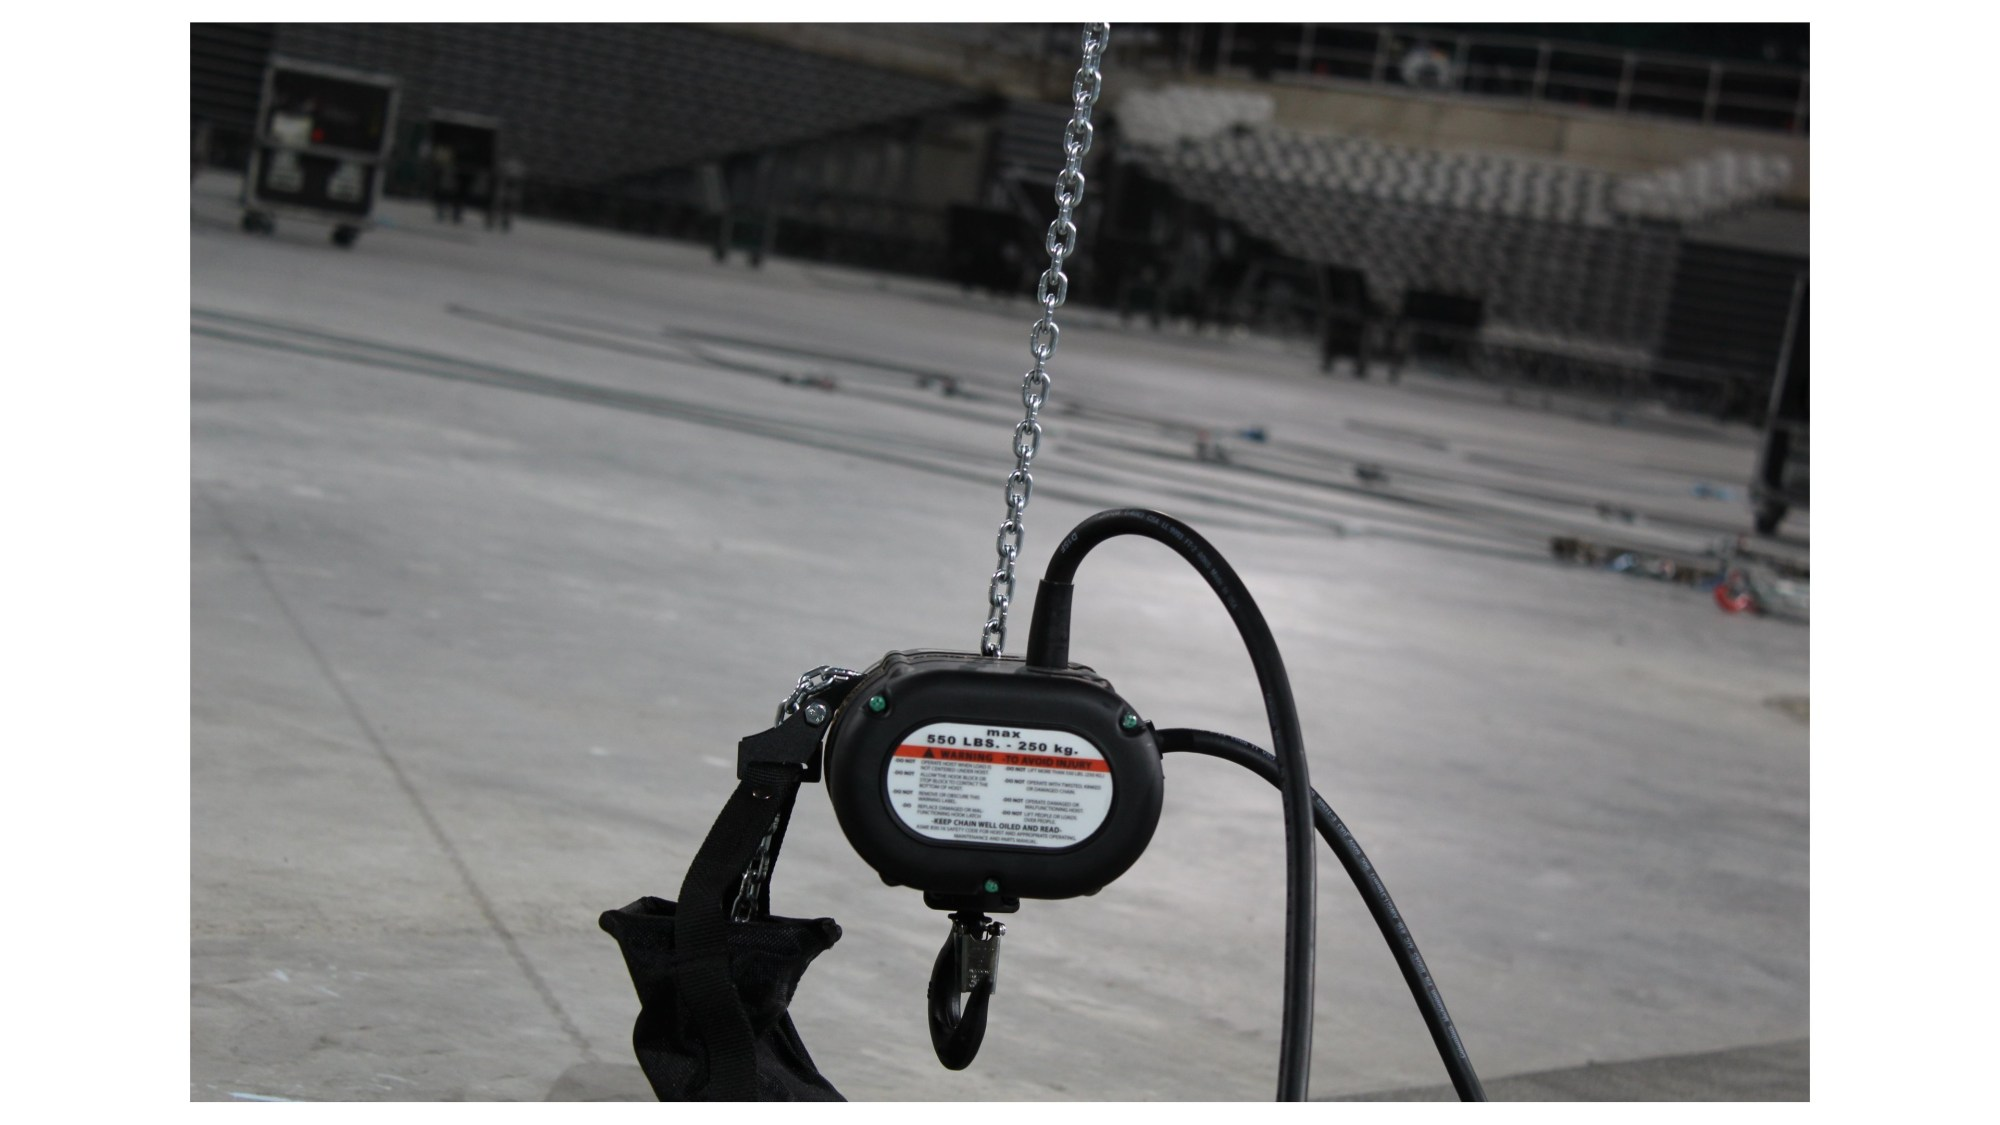 hight resolution of cm prostar 250 kg electric chain hoist prostar cm lodestar chain hoist wiring diagram